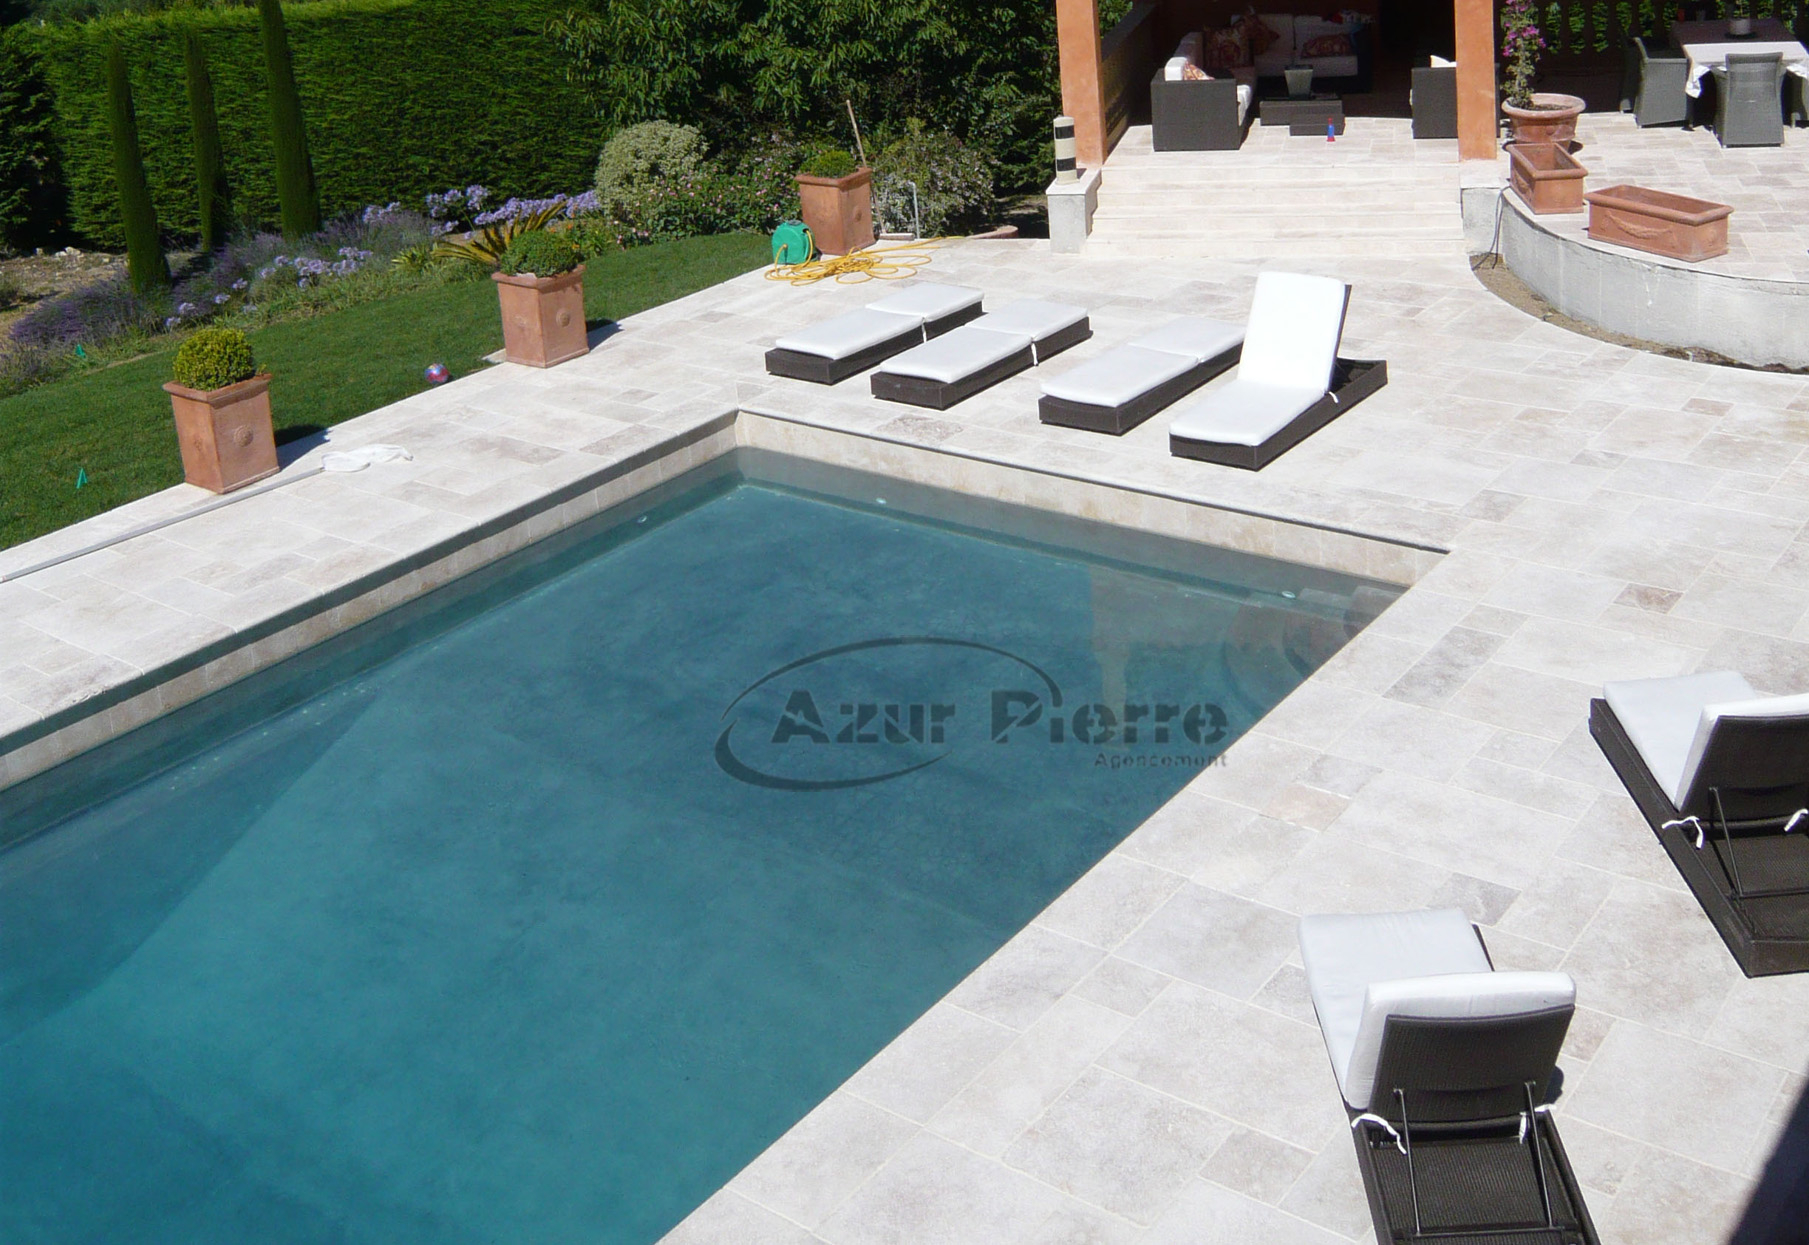 plage piscine travertin gris